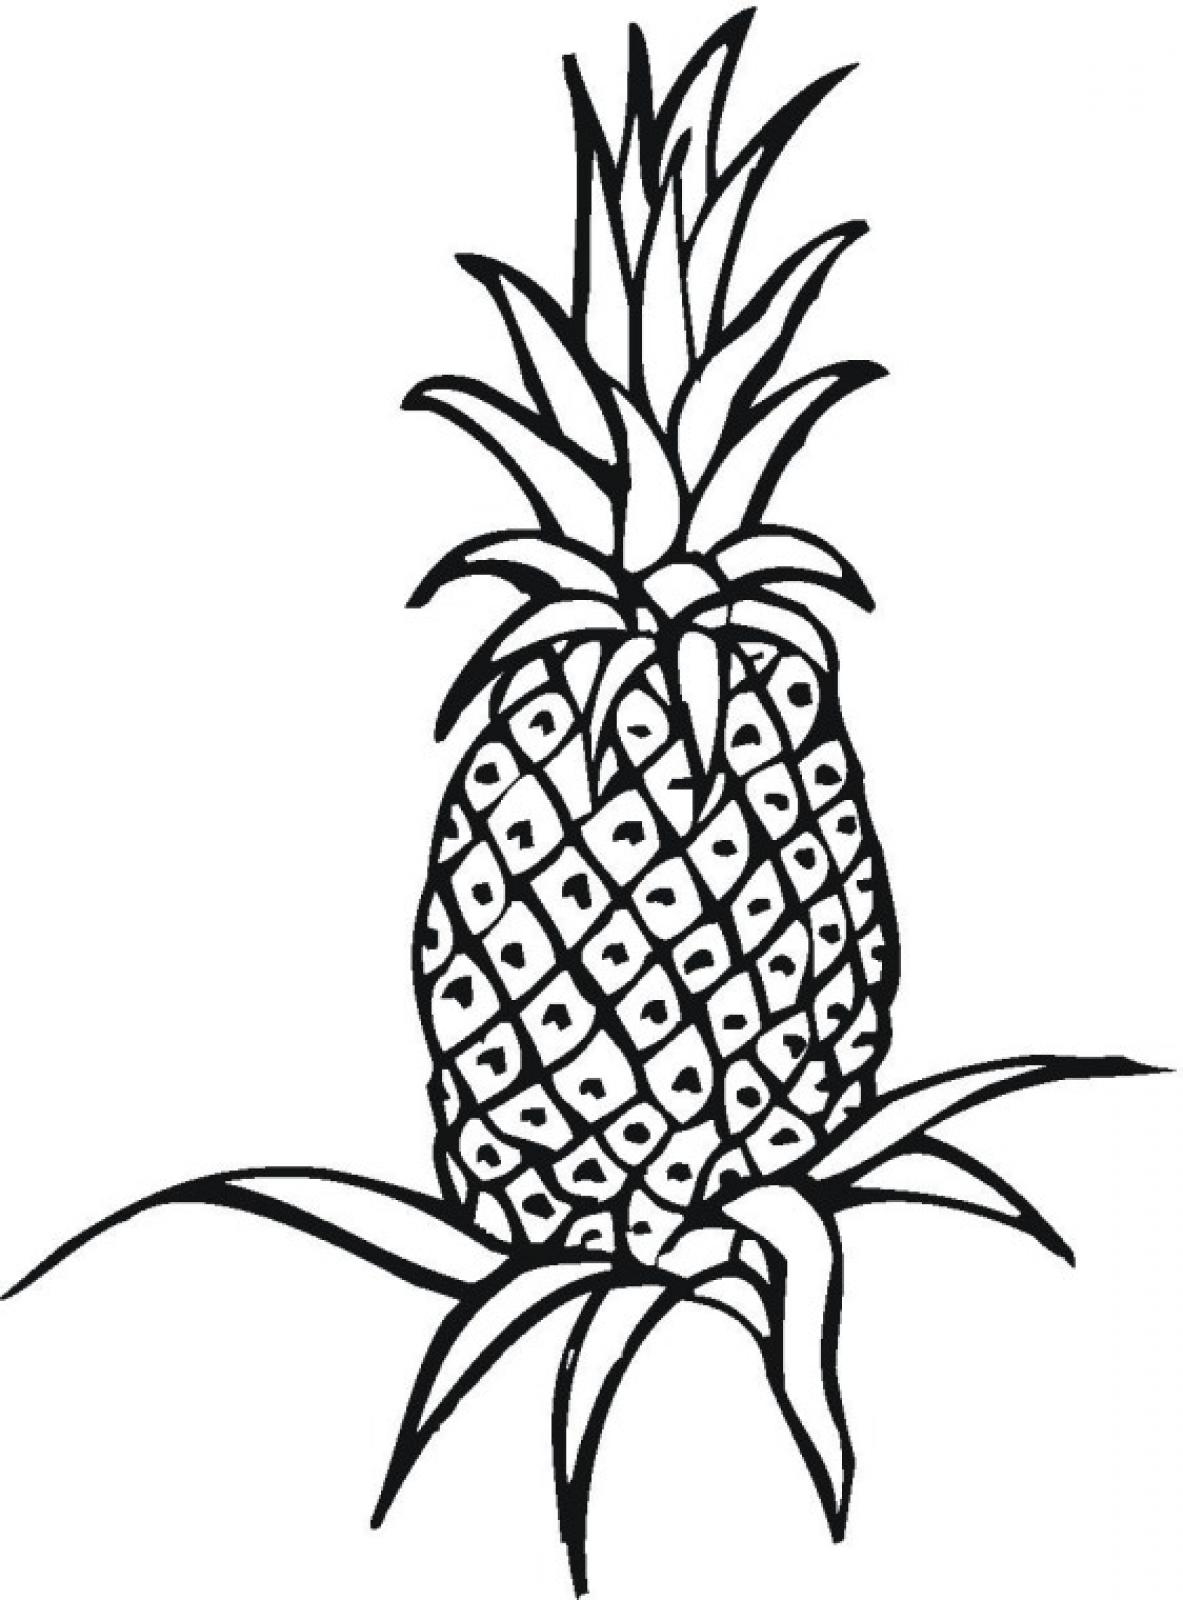 Pineapple Black And White | Free download on ClipArtMag